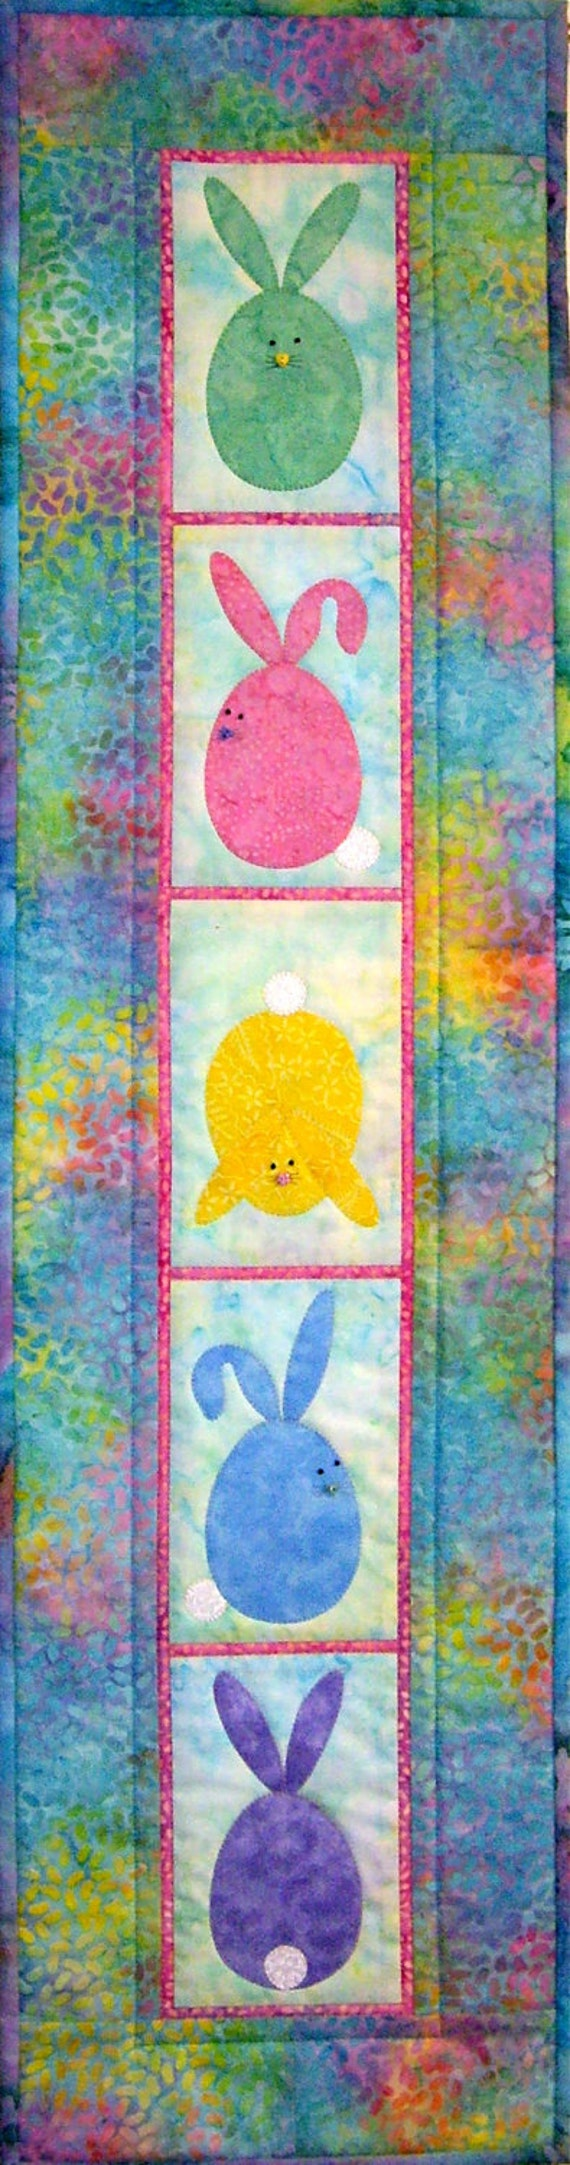 Bunny Quilted Wall Hanging 4325 4 Easter Wall Quilt Bunny